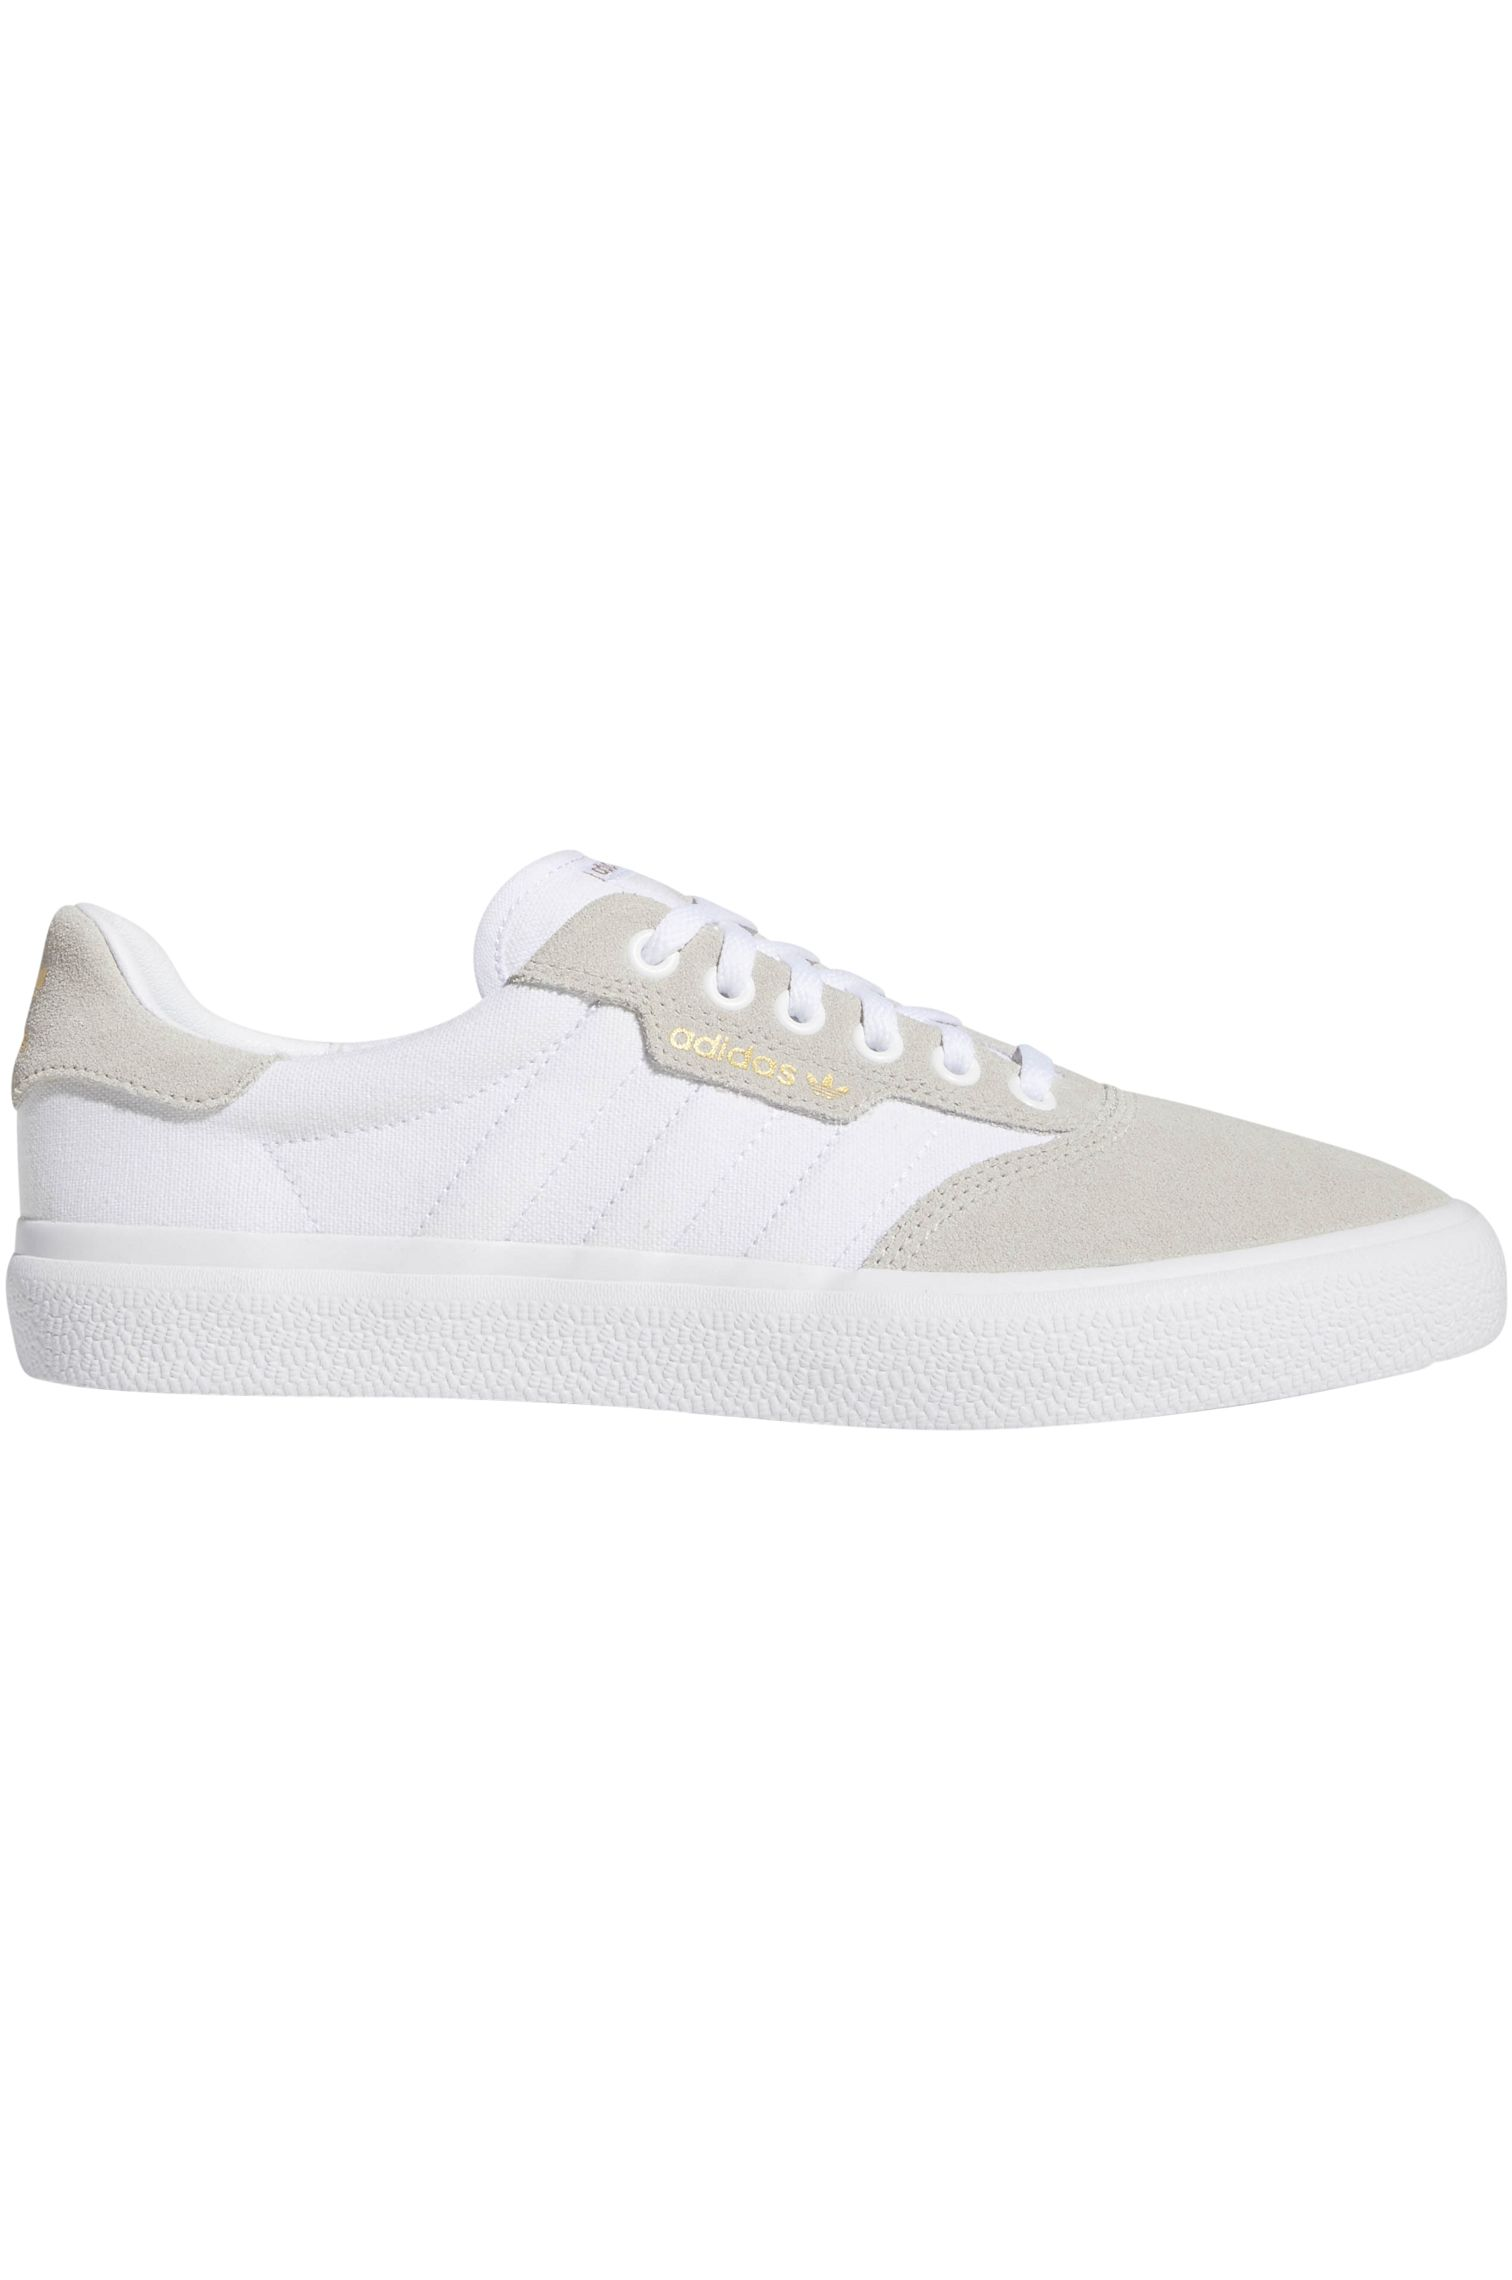 aa67de9e2f7 Tenis Adidas 3MC Ftwr White Clear Brown Gold Met.